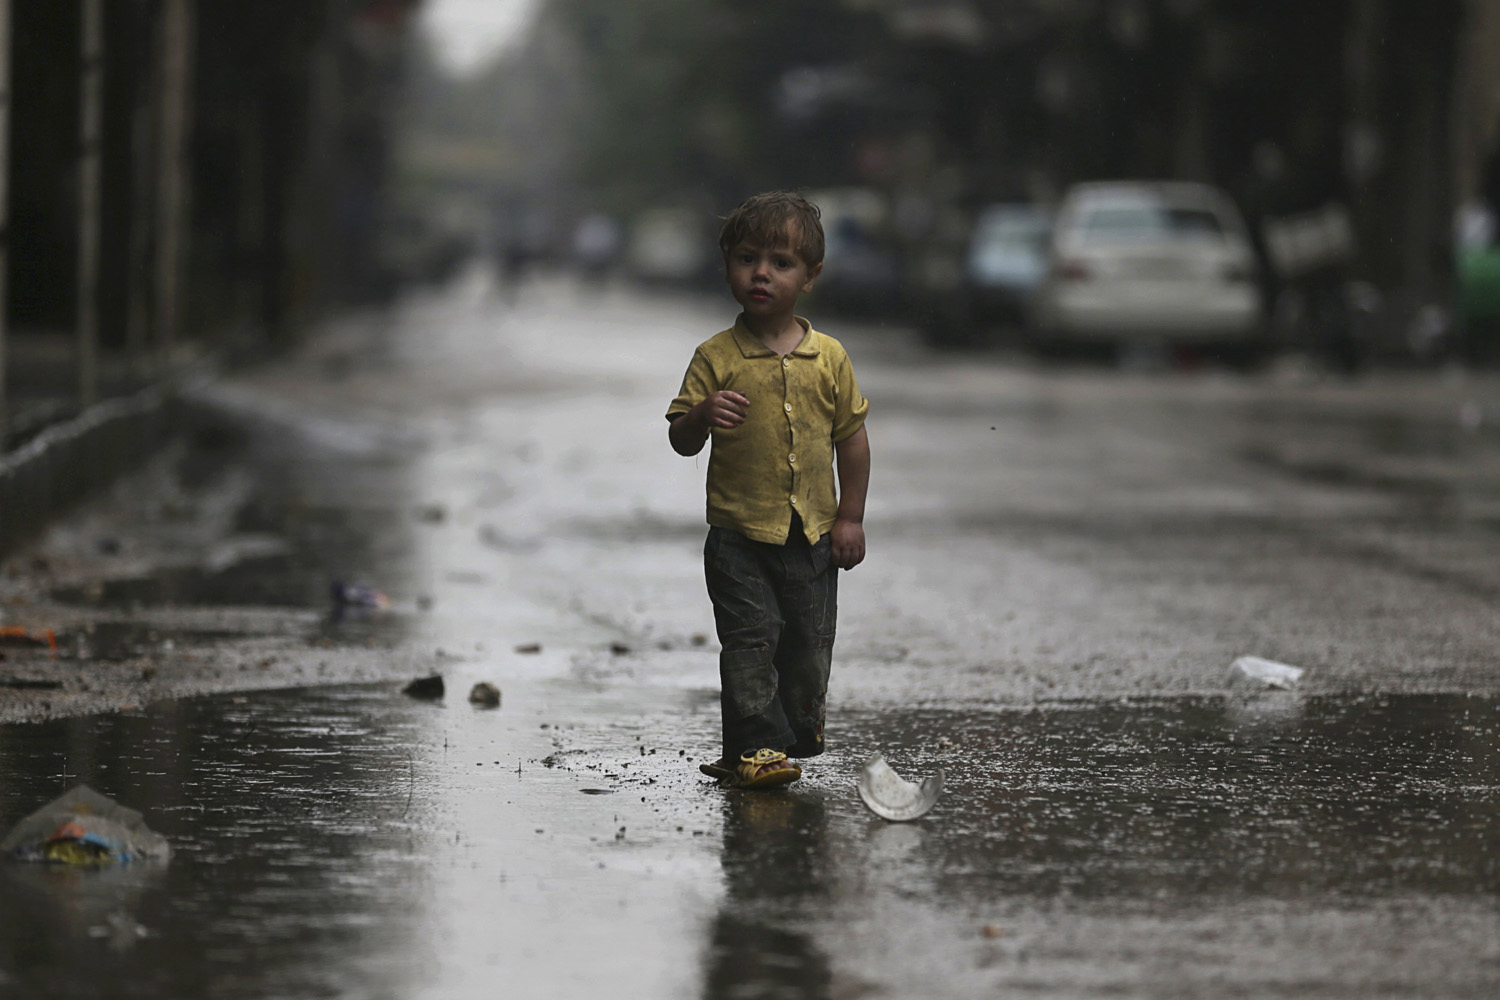 May 8, 2014. A child walks along a street during rainy weather in the Duma neighbourhood of Damascus, Syria.